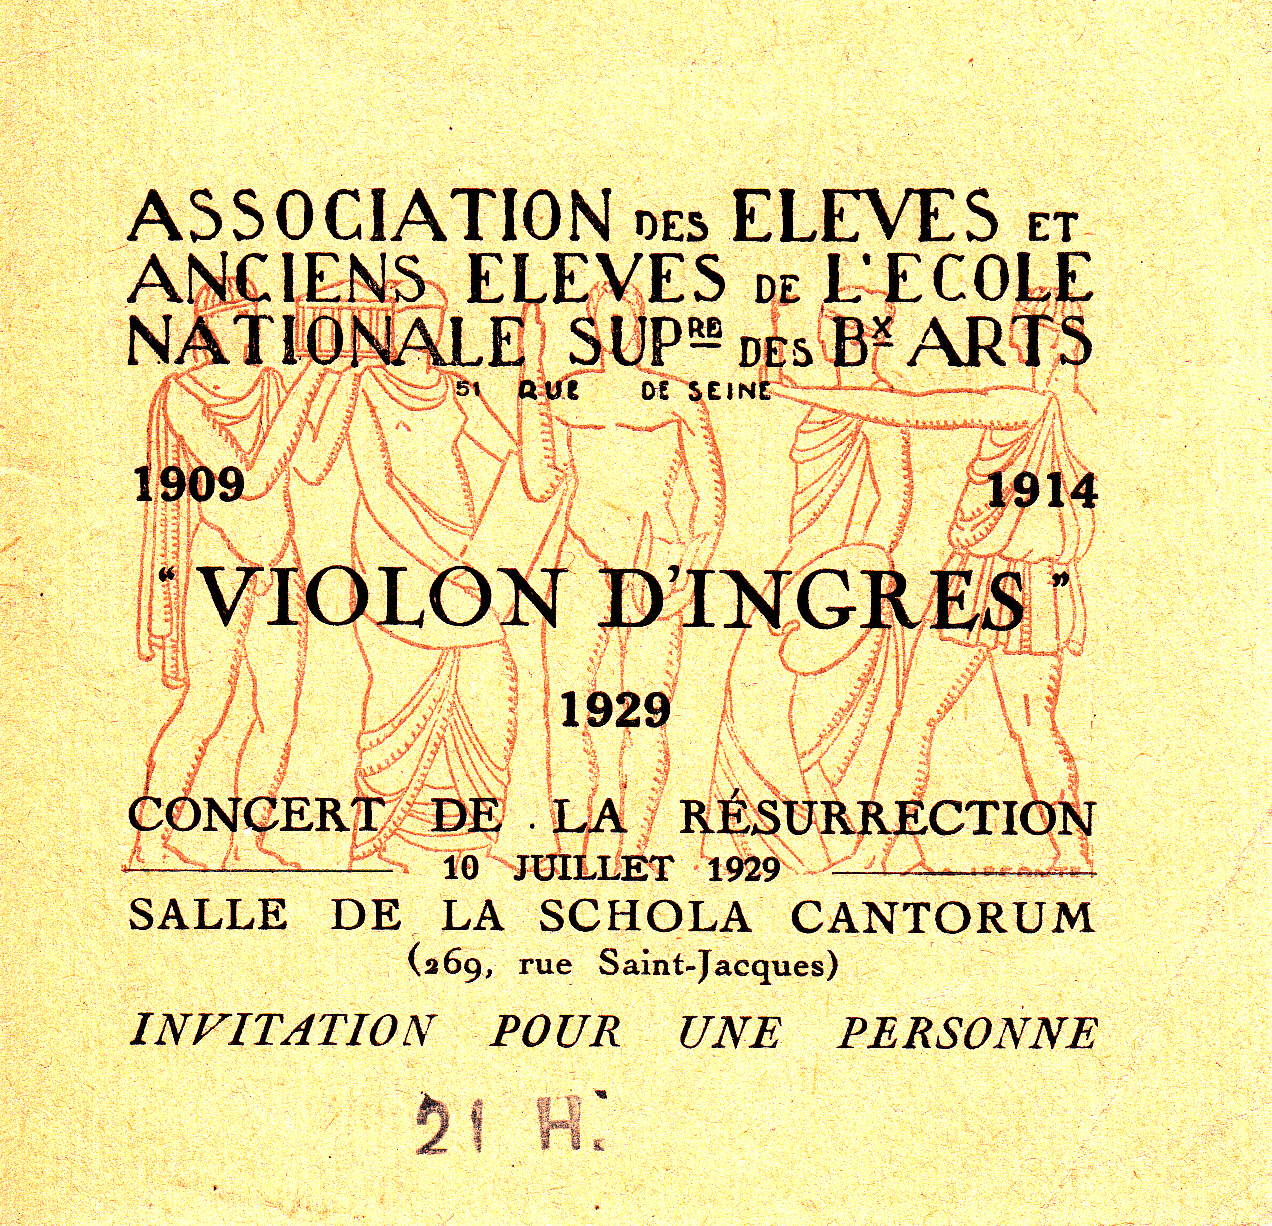 1929_Coupon-invitation-concert.jpg